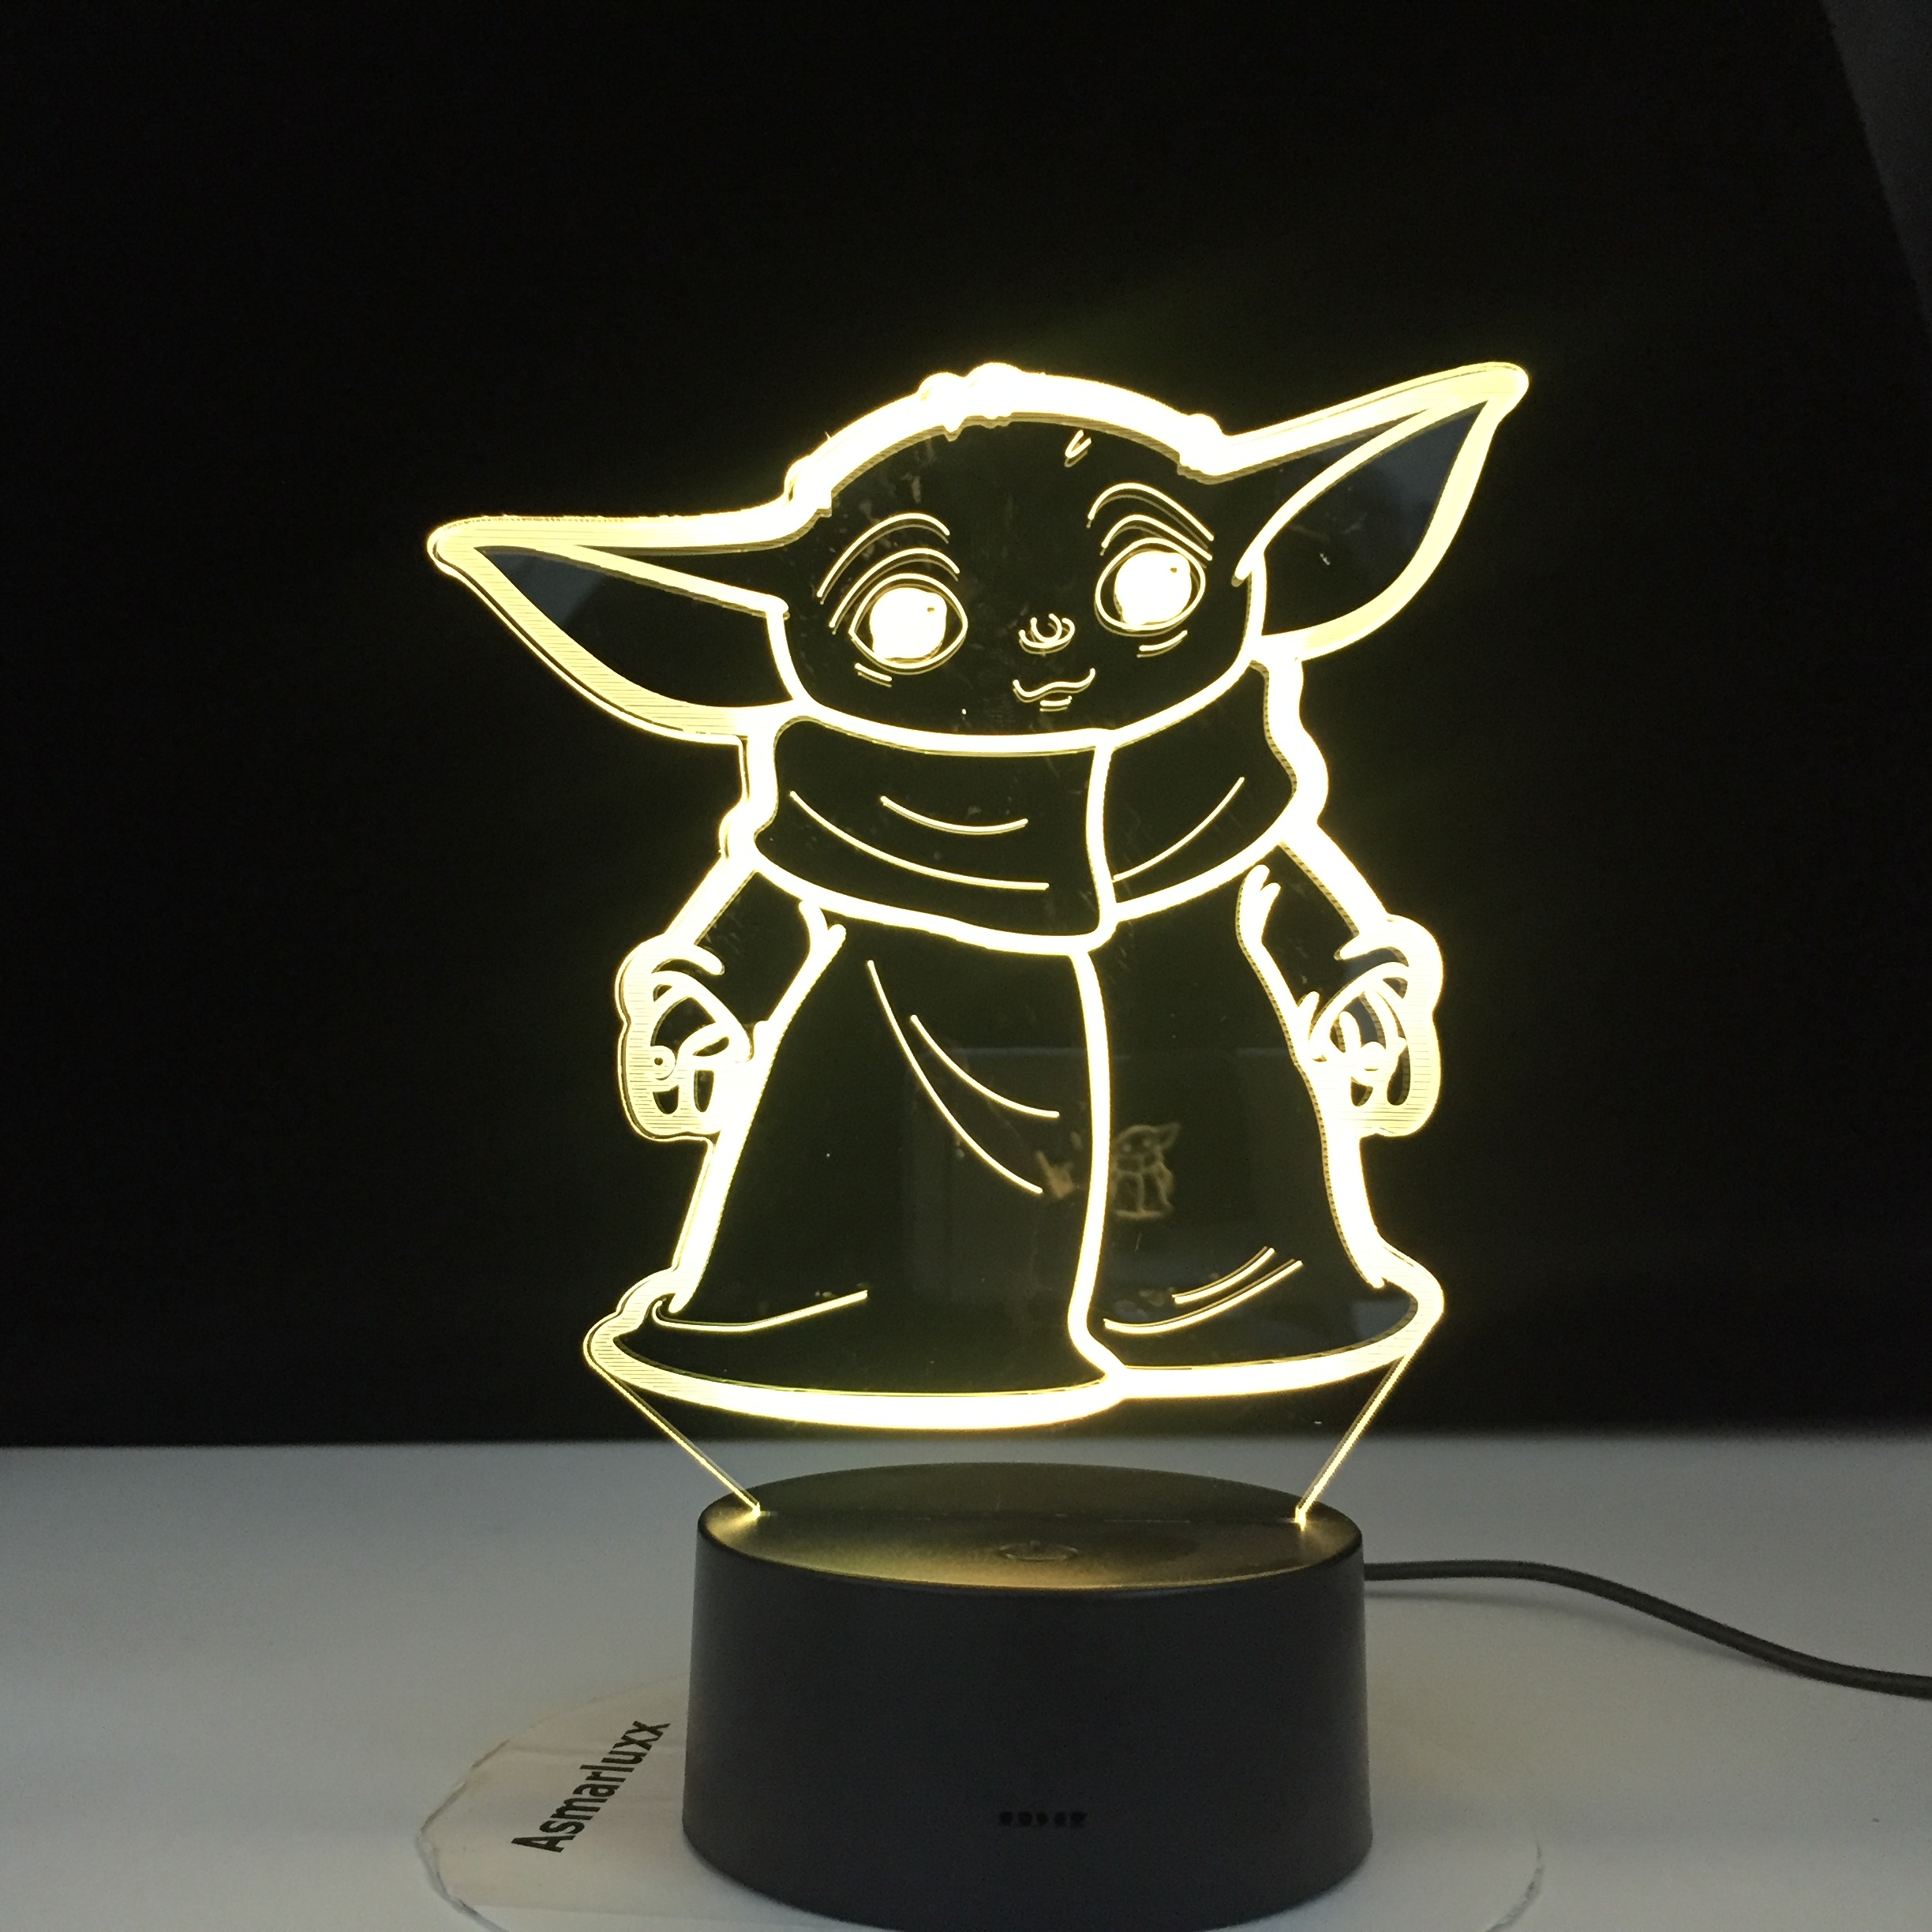 Star Wars Mini Yoda 3d Led Night Light  Baby Cartoon Meme Figure Nightlight For Kids Child Bedroom Decor Table Lamp Night Light